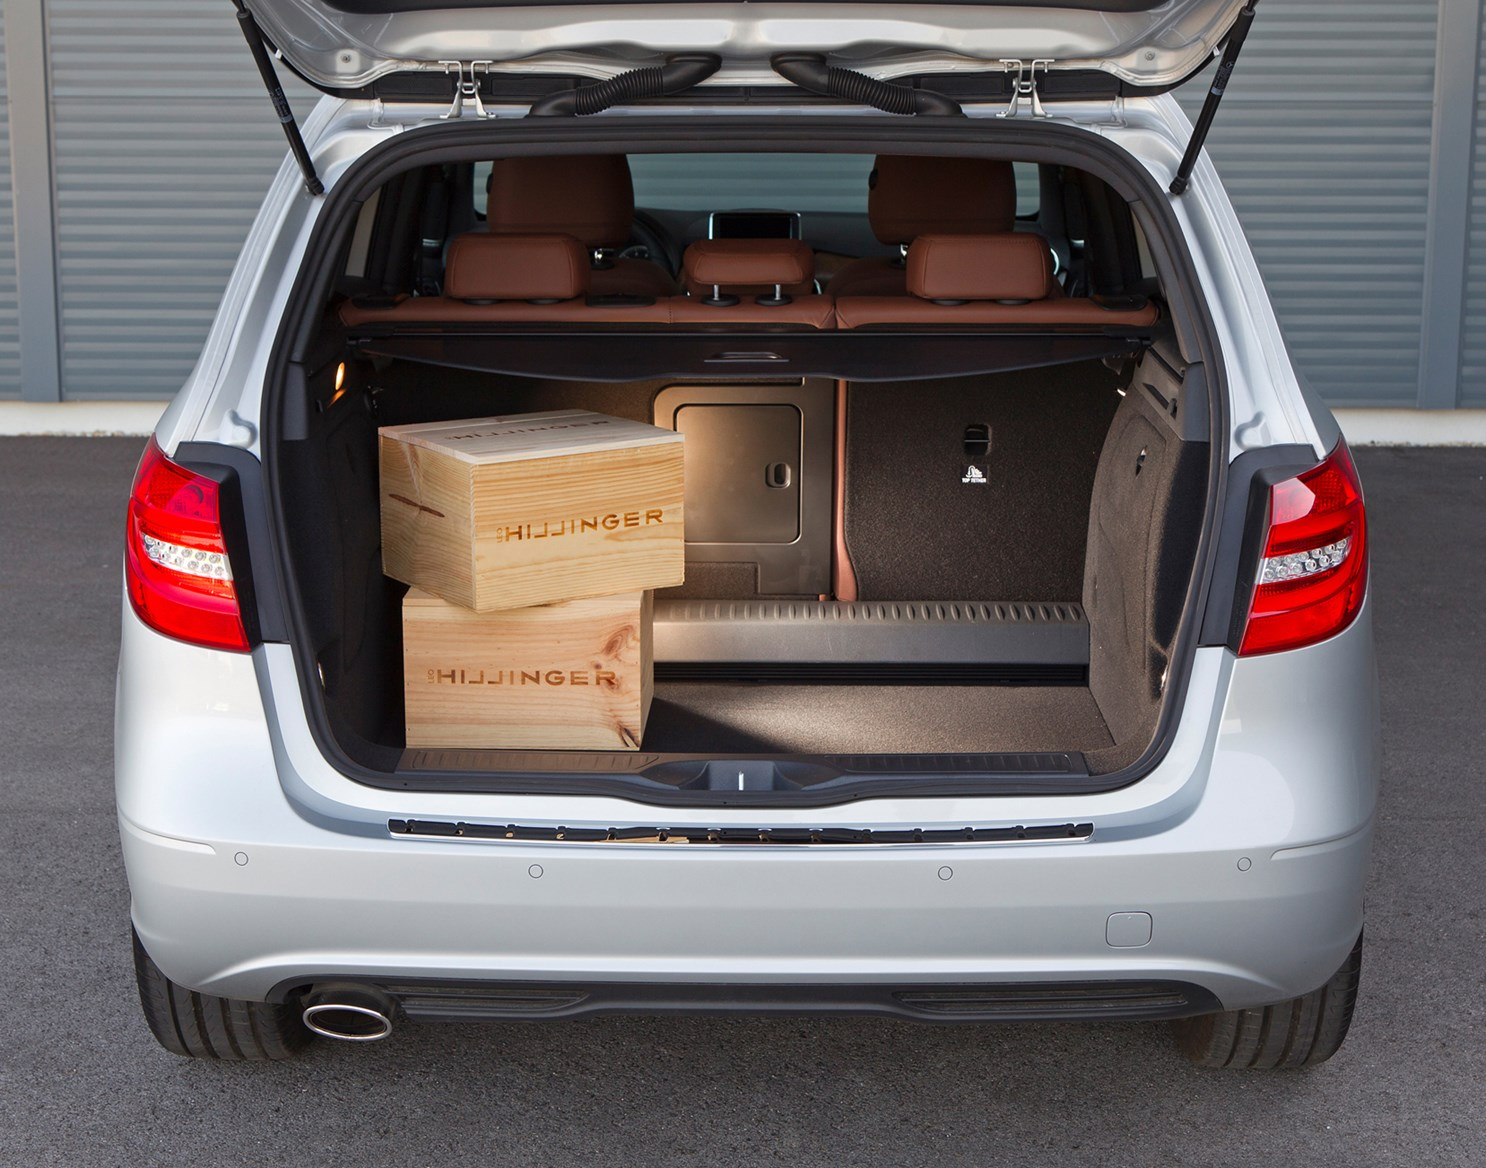 mercedes benz b class estate 2012 features equipment and accessories parkers. Black Bedroom Furniture Sets. Home Design Ideas